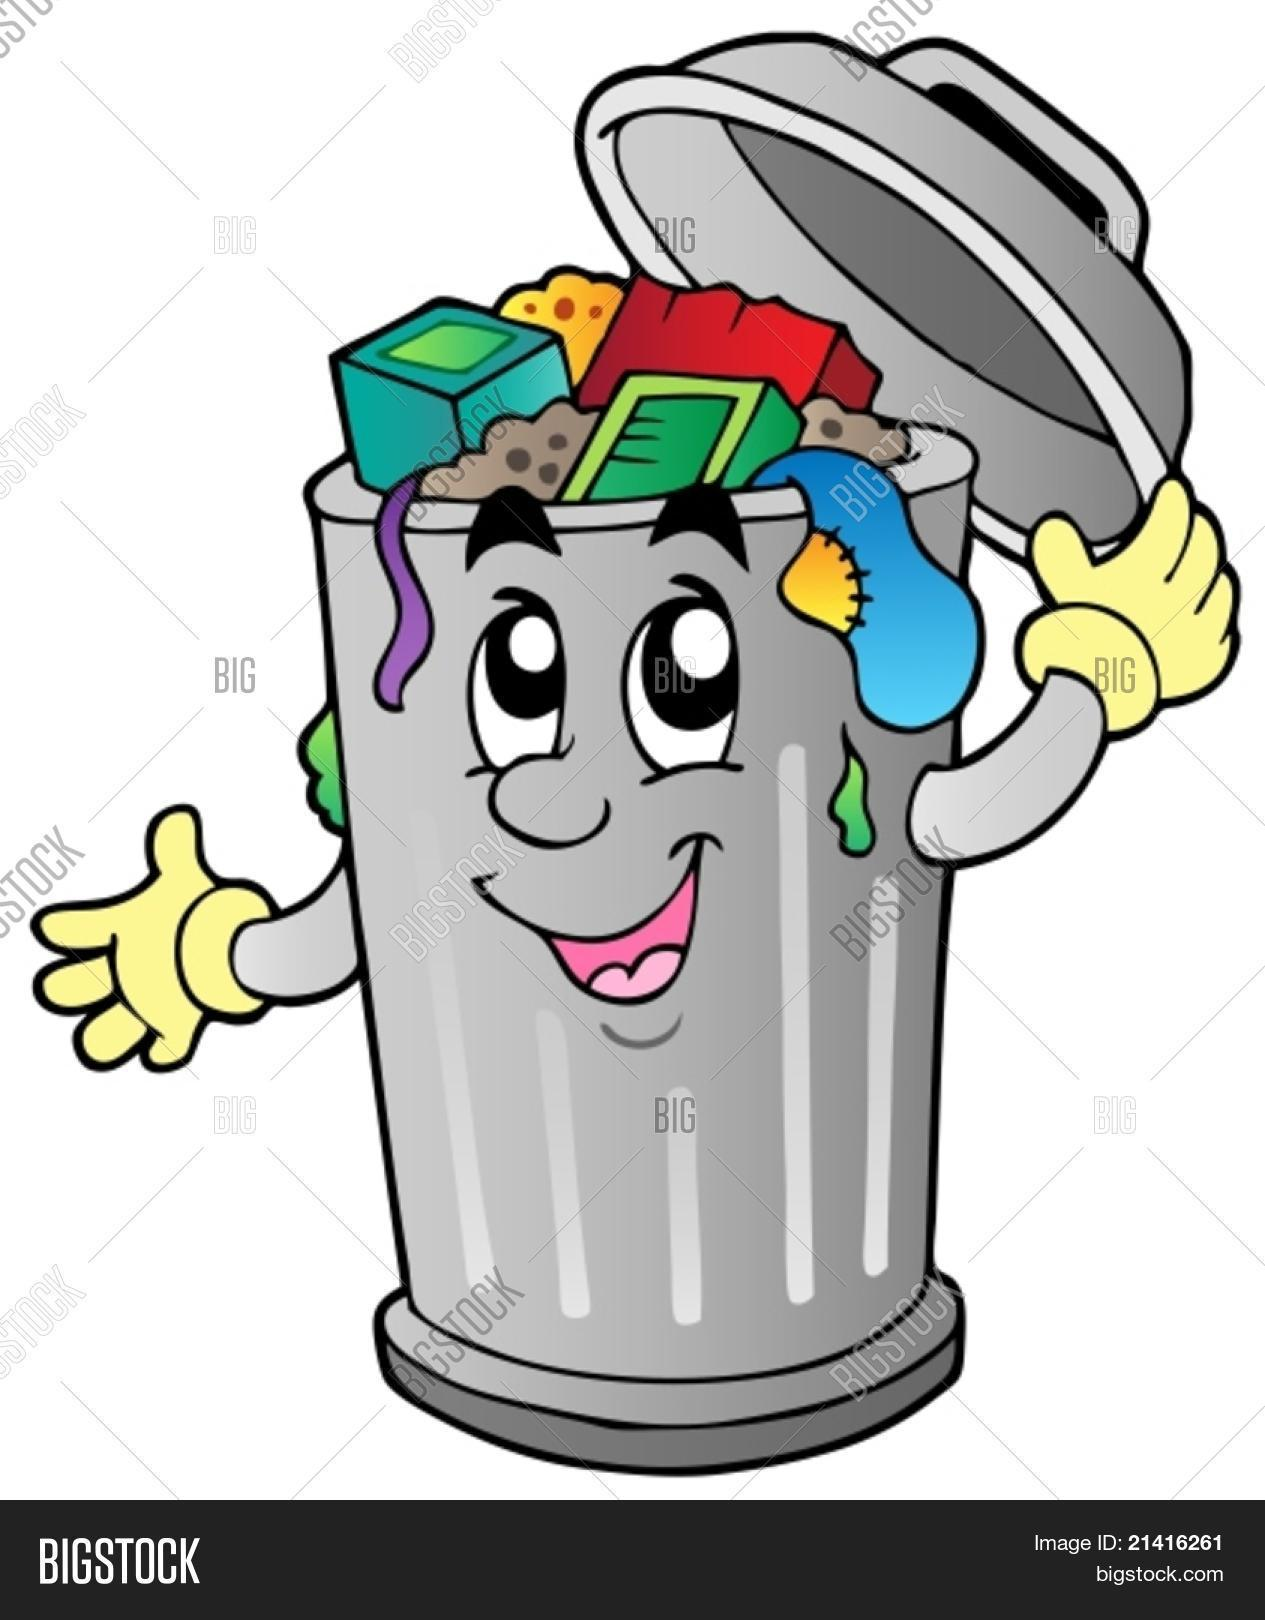 Cartoon trash can - vector illustration. Stock Vector & Stock Photos ...